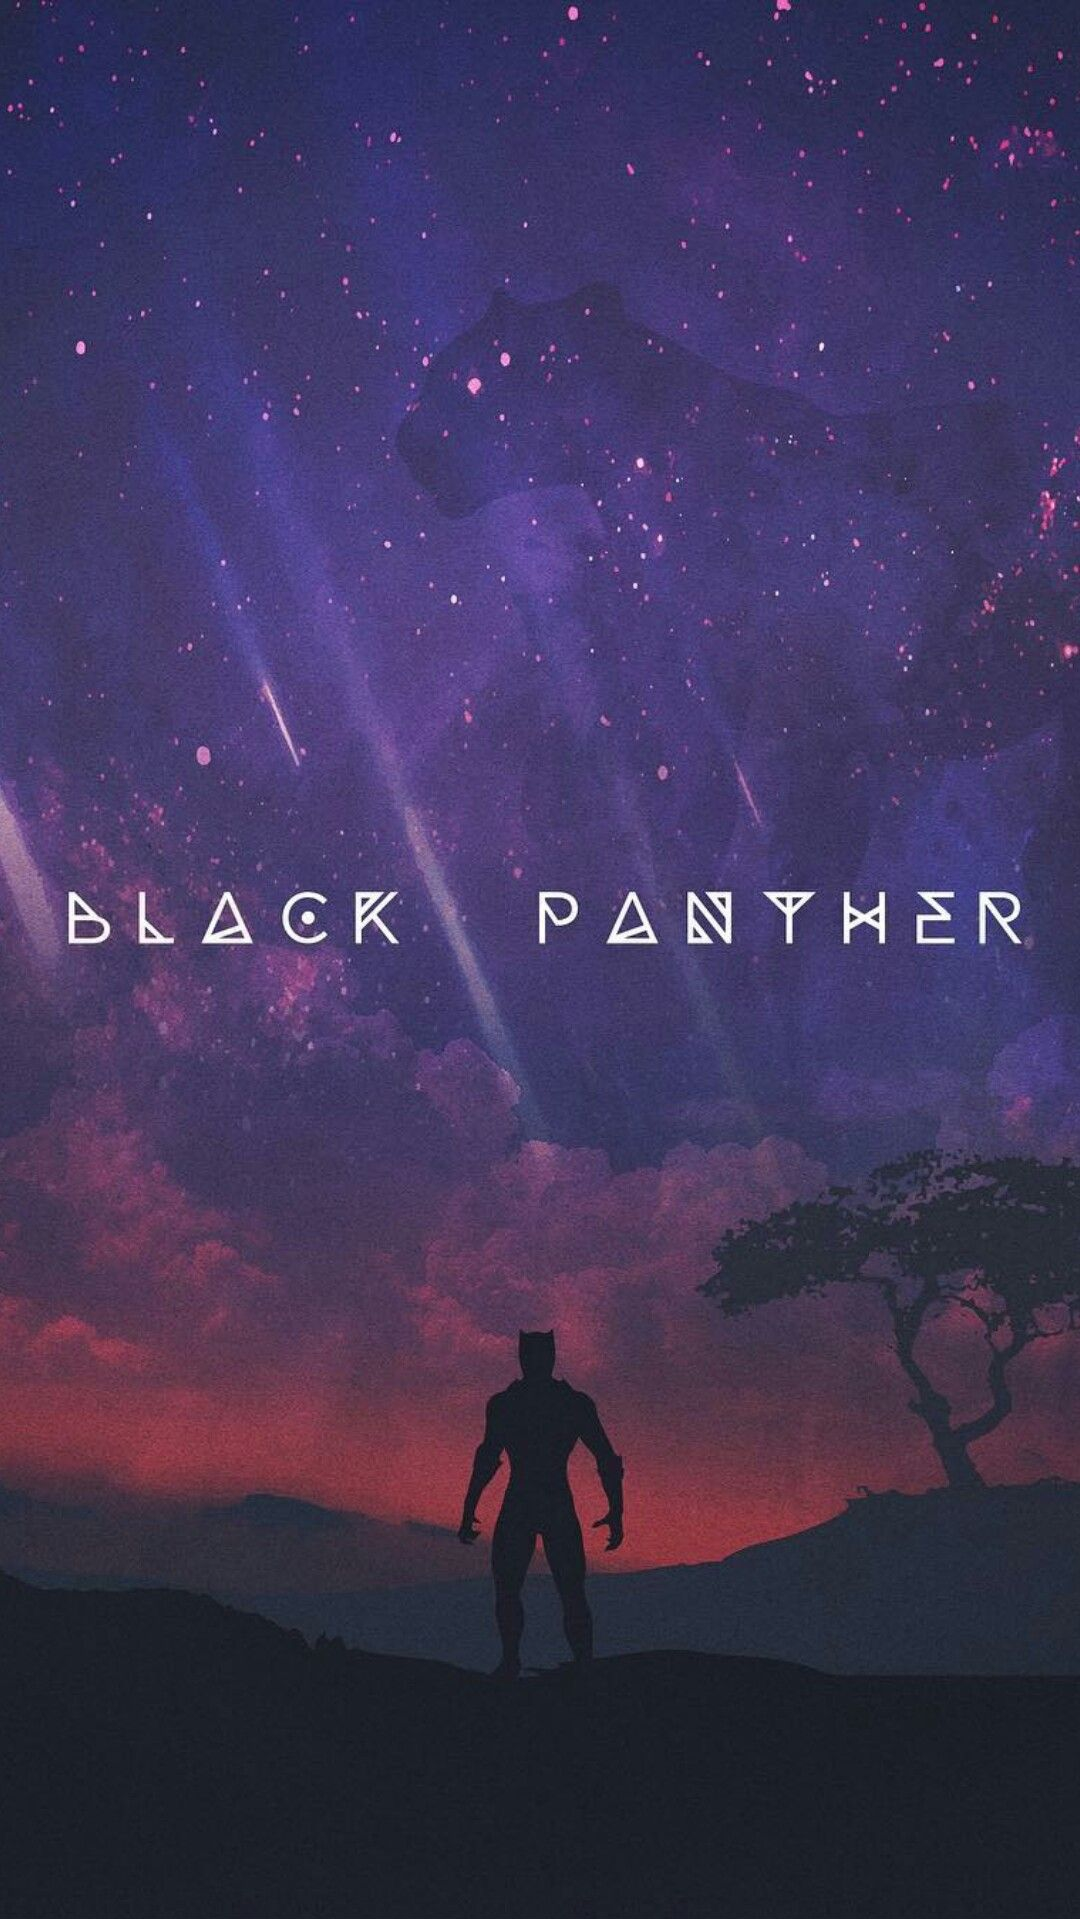 Cute Love Quotes Wallpapers Free Download Black Panther Wakanda Iphone Wallpaper Iphone Wallpapers